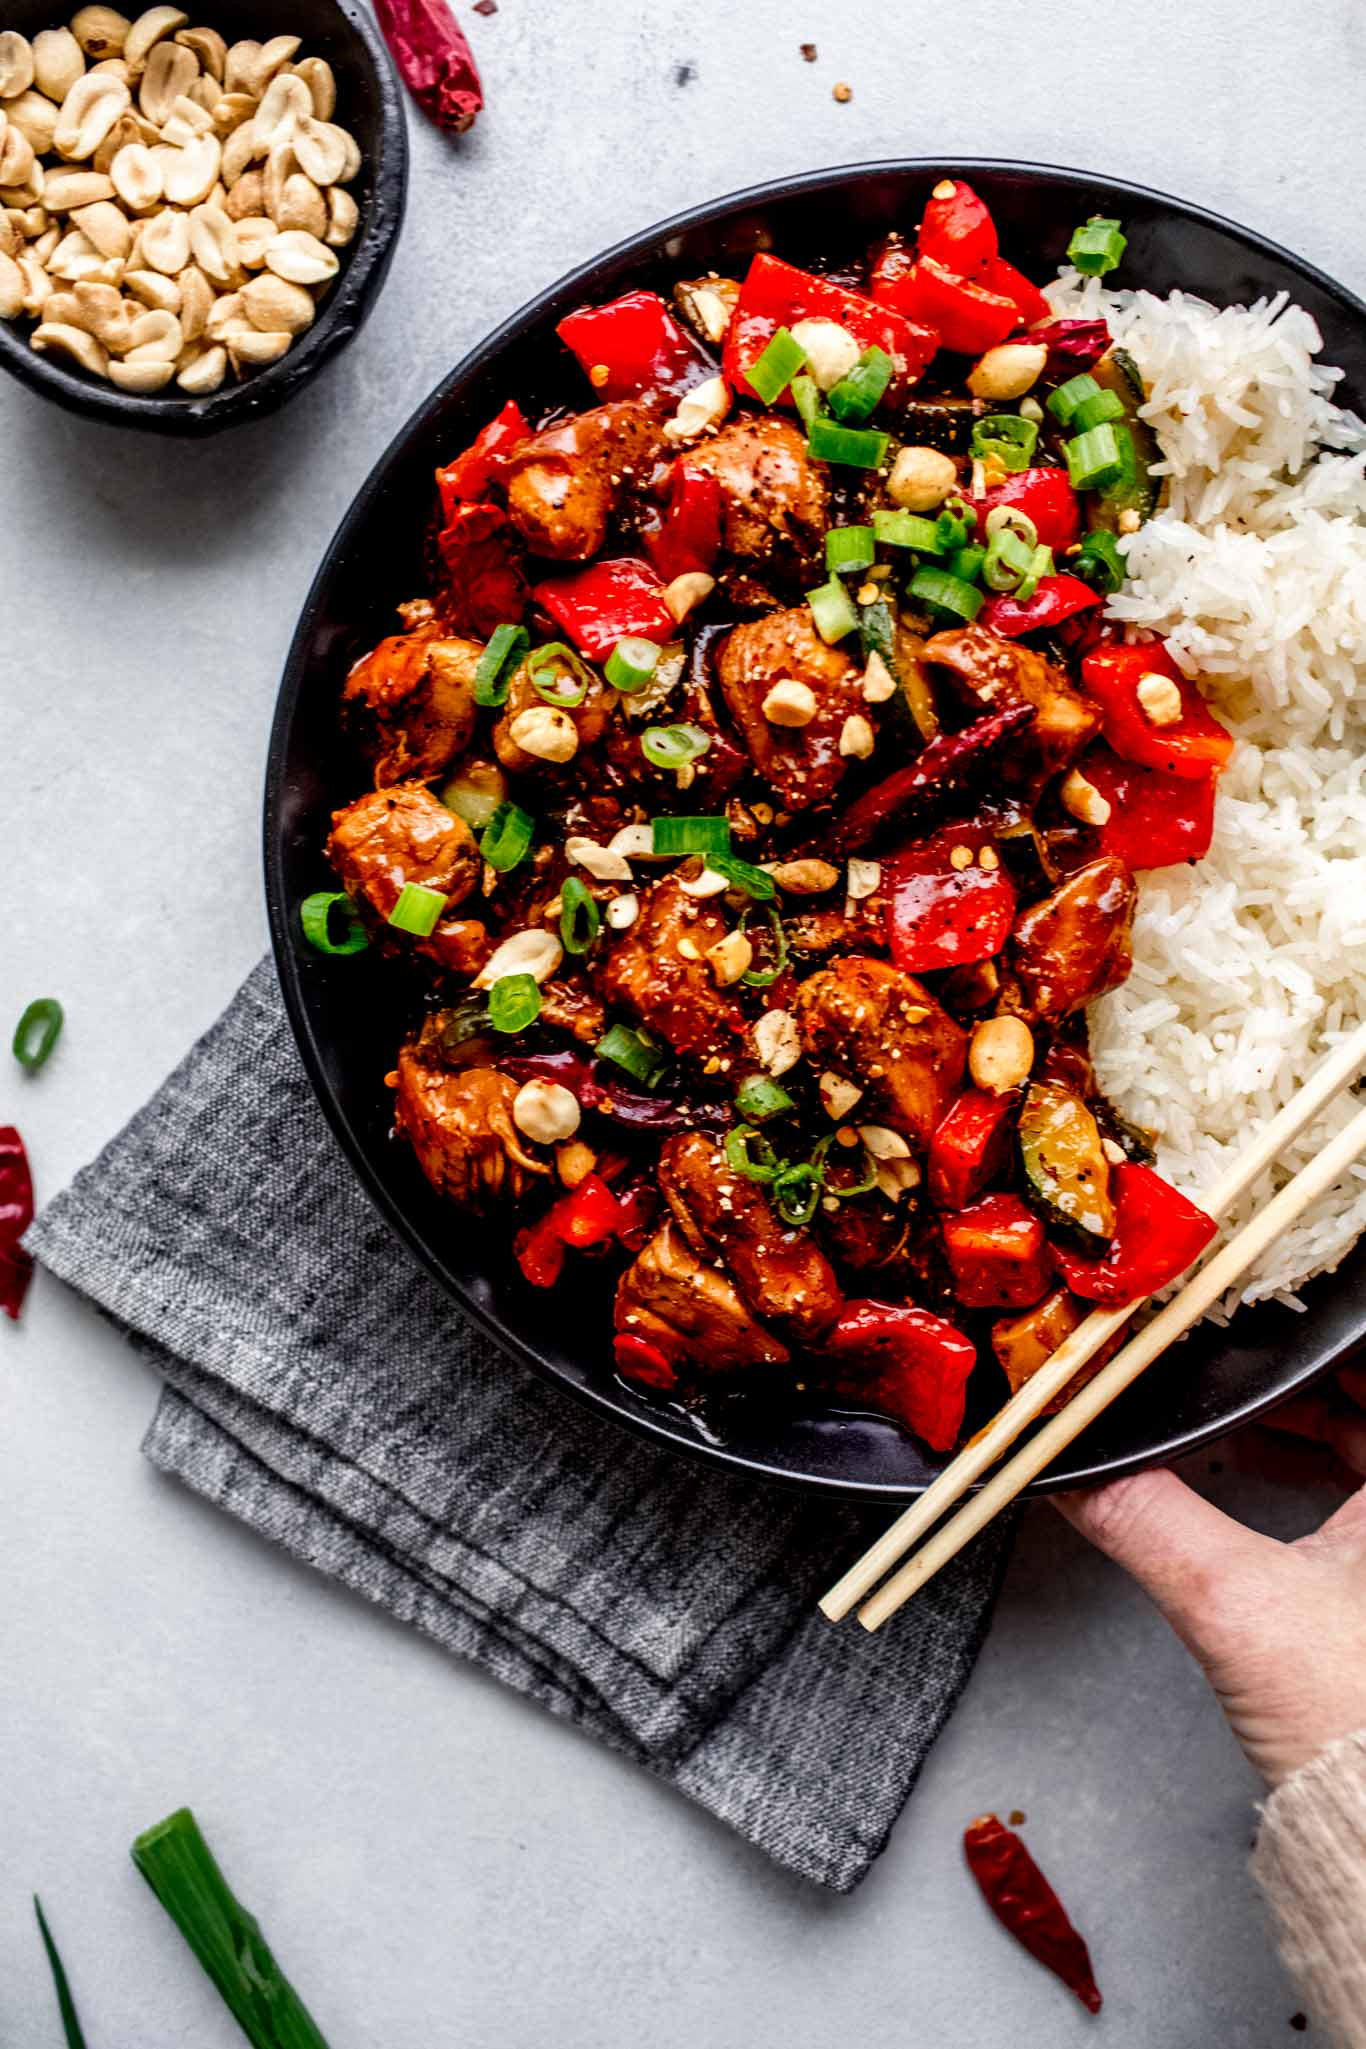 Hand holding plate of slow cooker kung pao chicken.